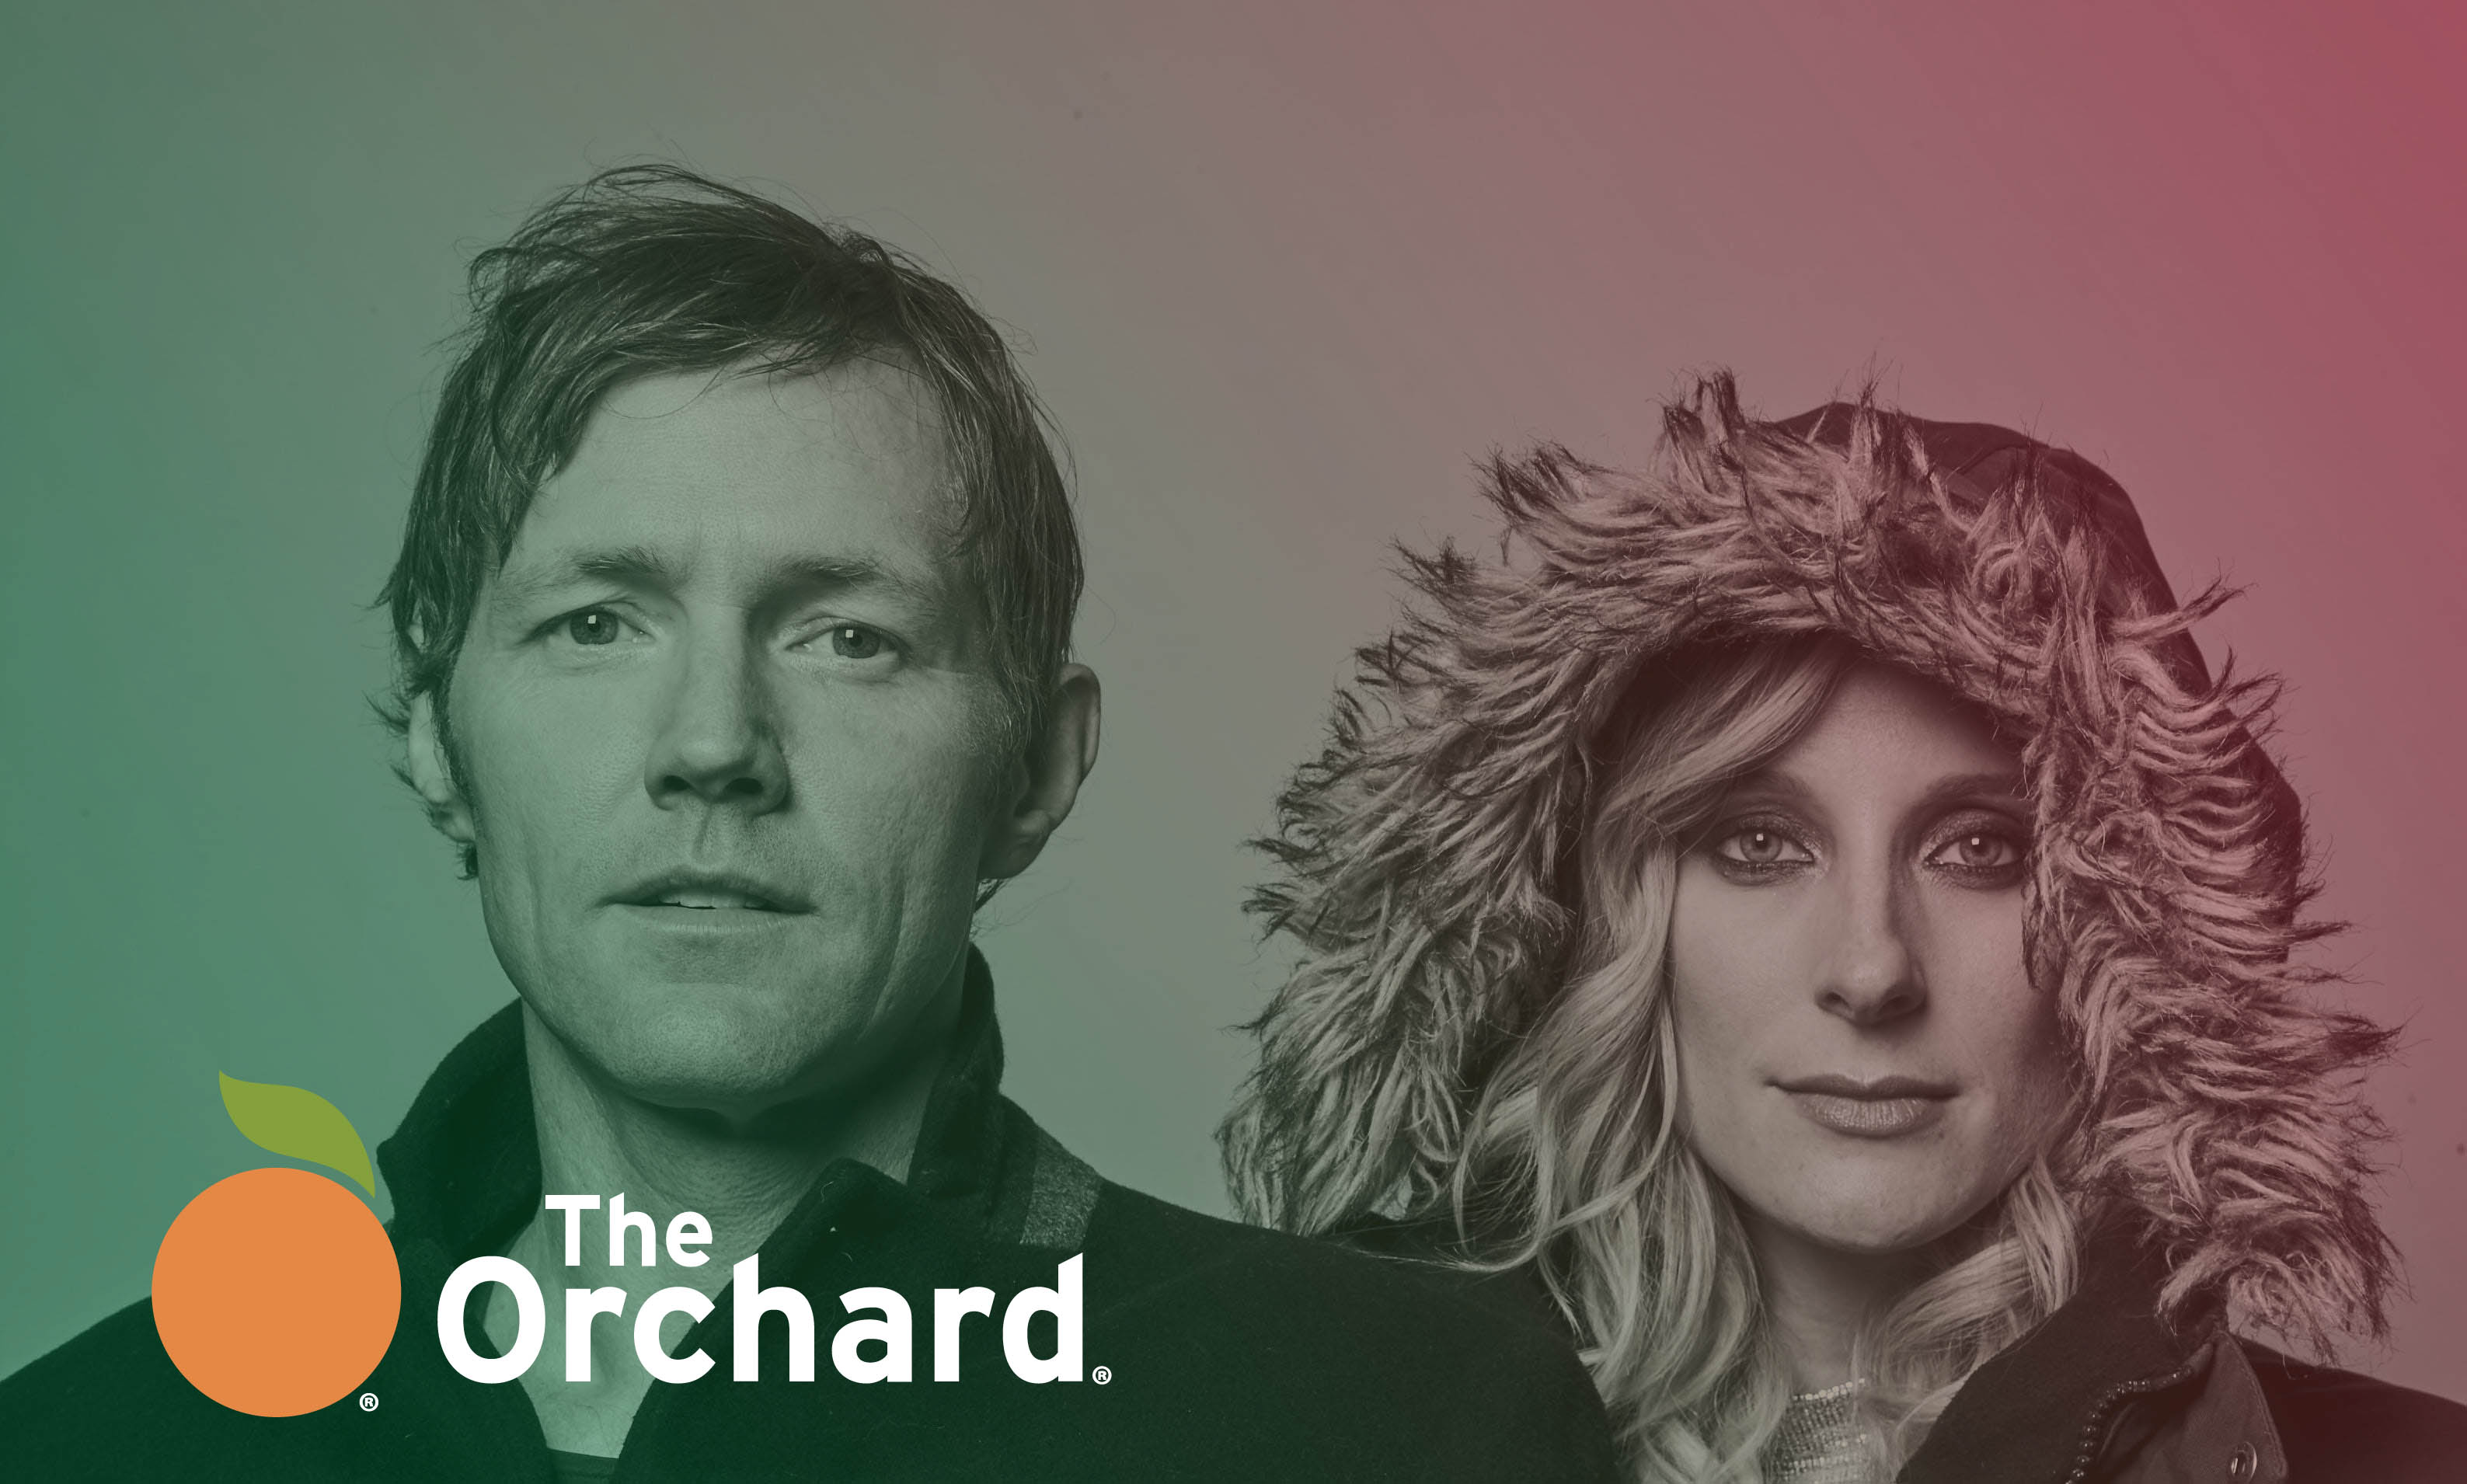 There's No Place Like The Orchard For The Holidays